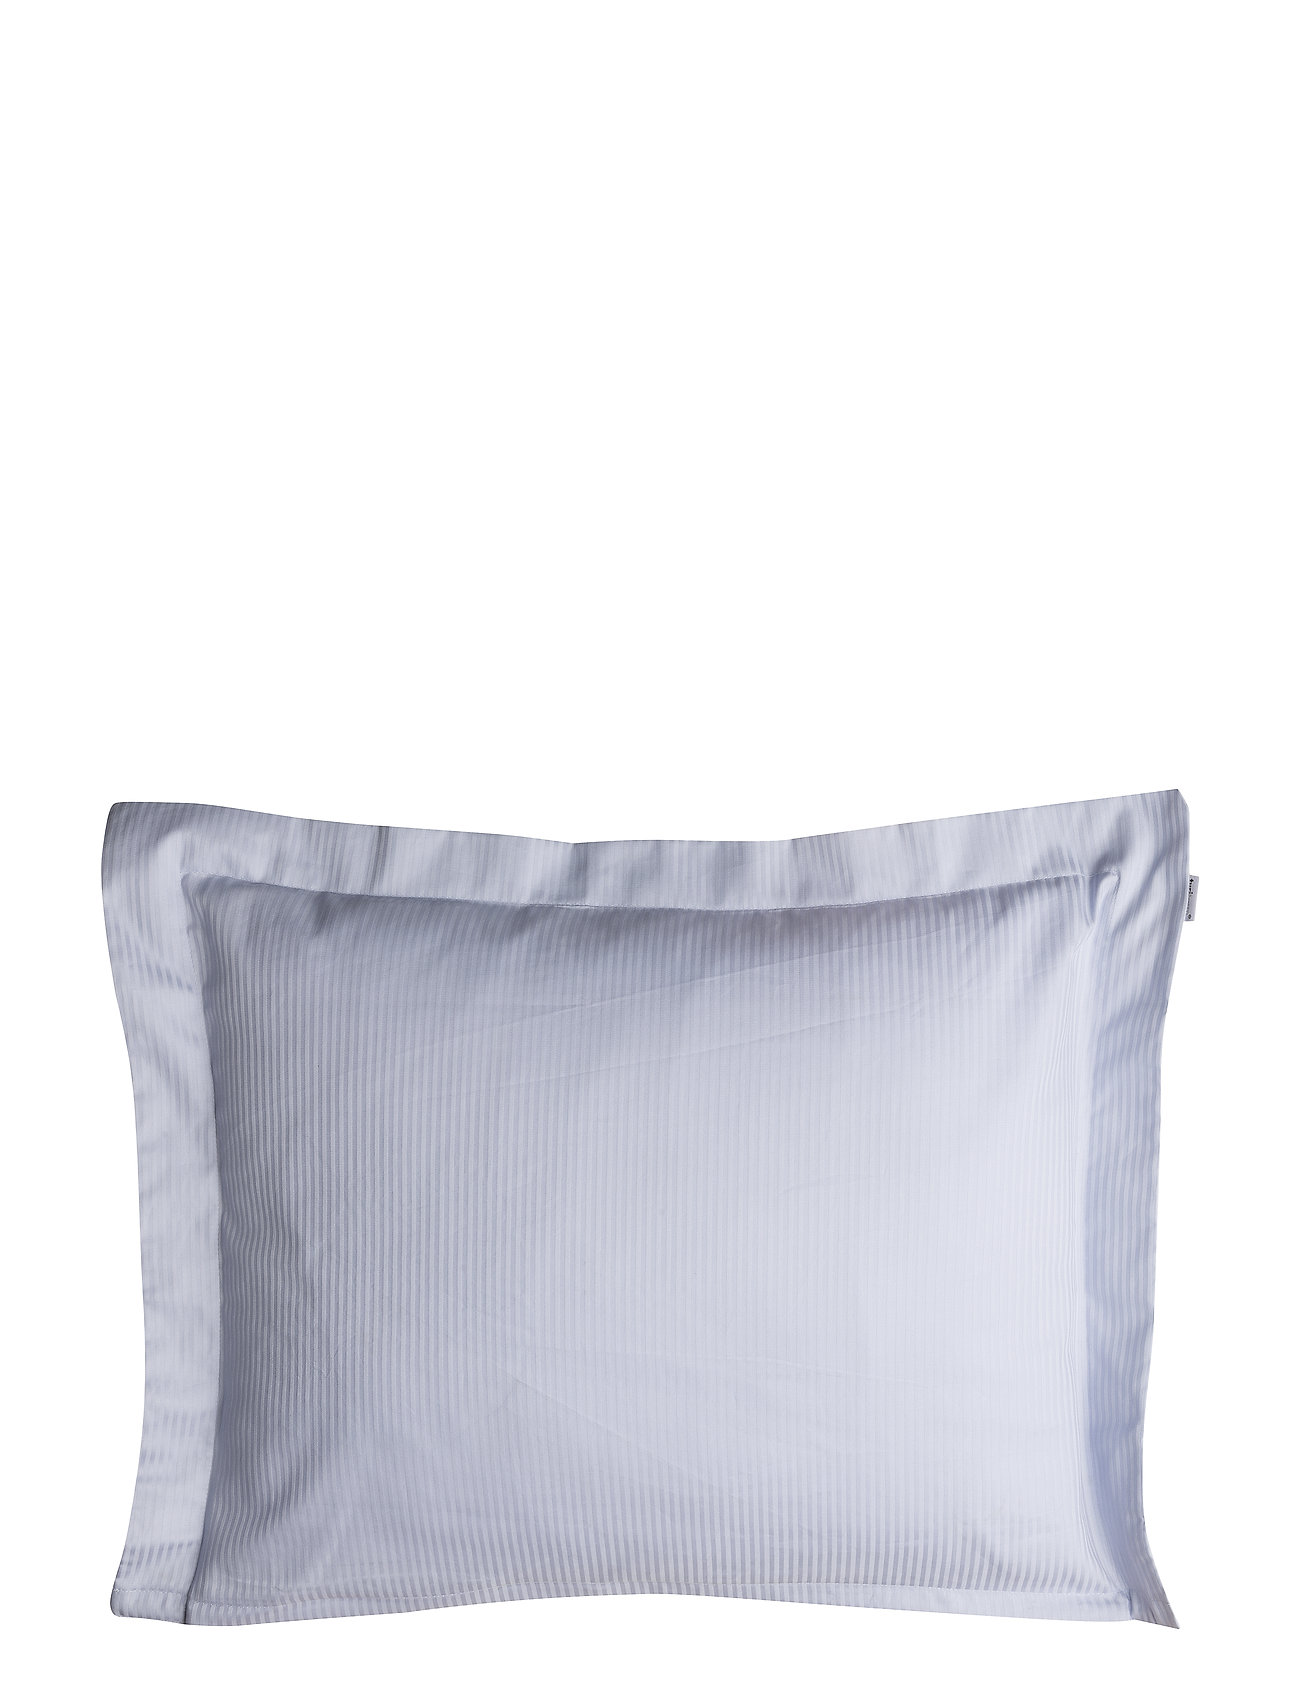 Turiform Turistripe Pillowcase - LIGHT BLUE